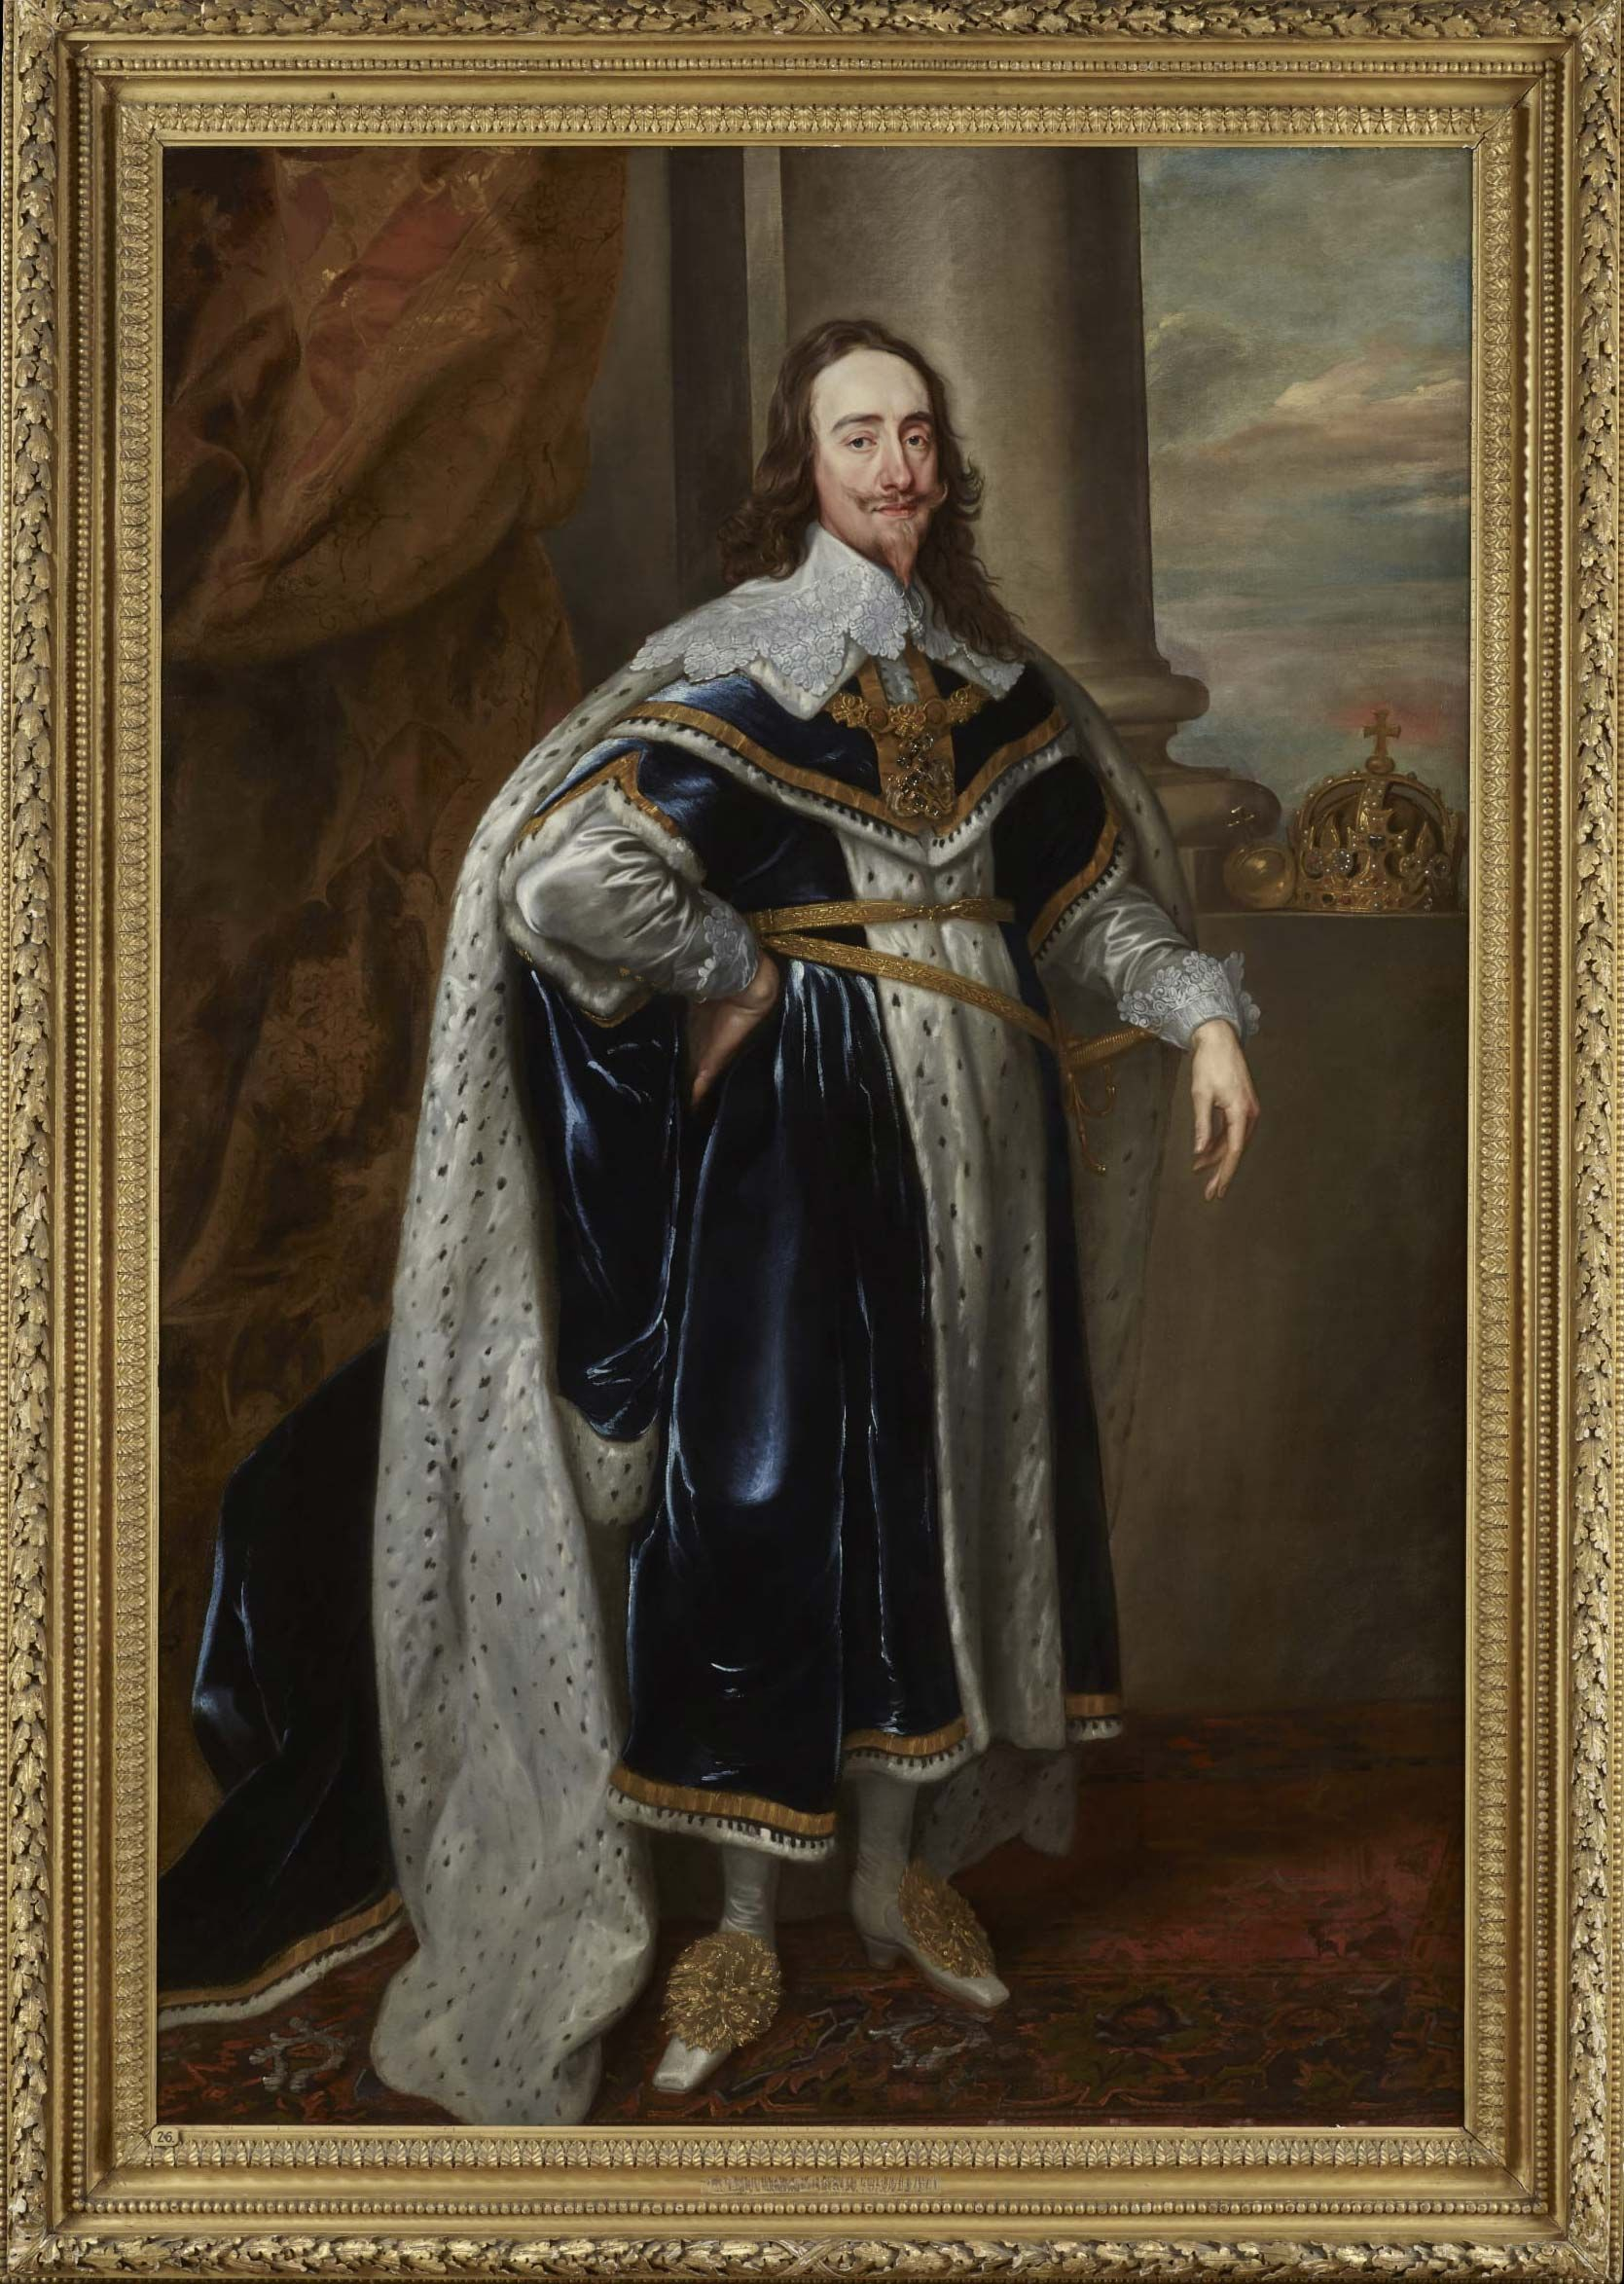 Portrait of King Charles I in his Robes of State by Van Dyck, 1636.